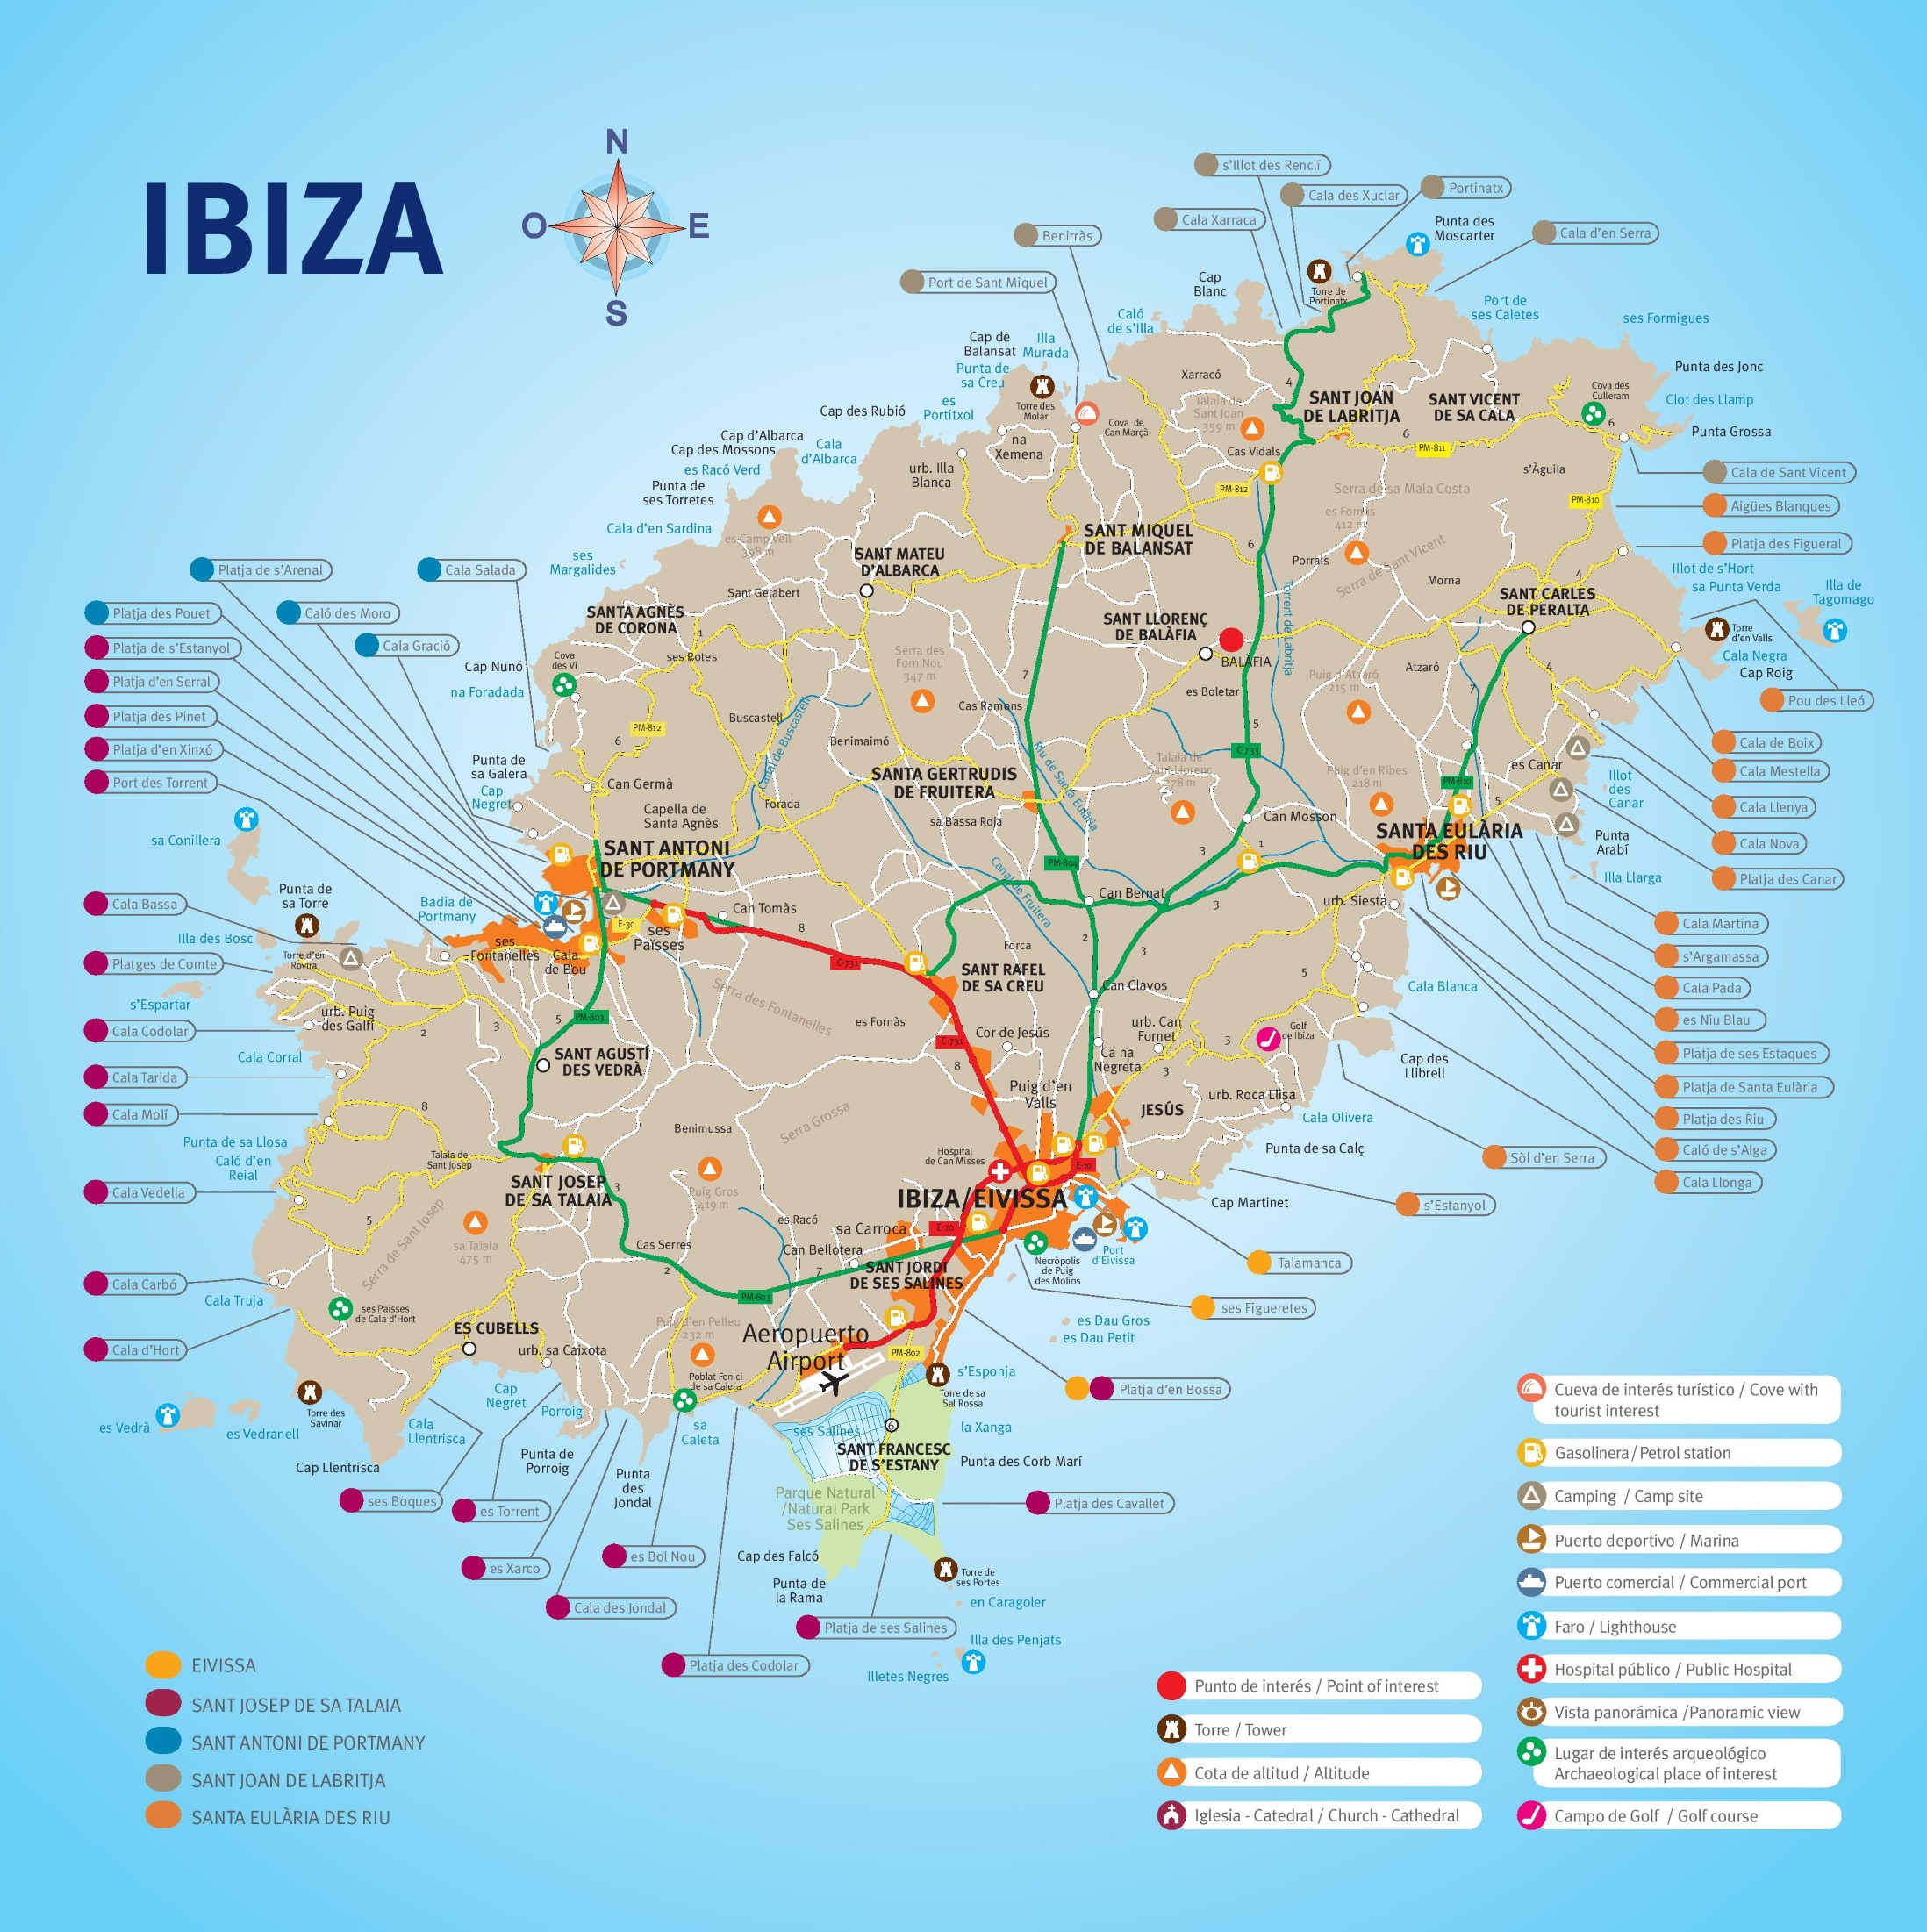 Ibiza Maps Balearic Islands Spain Map of Ibiza